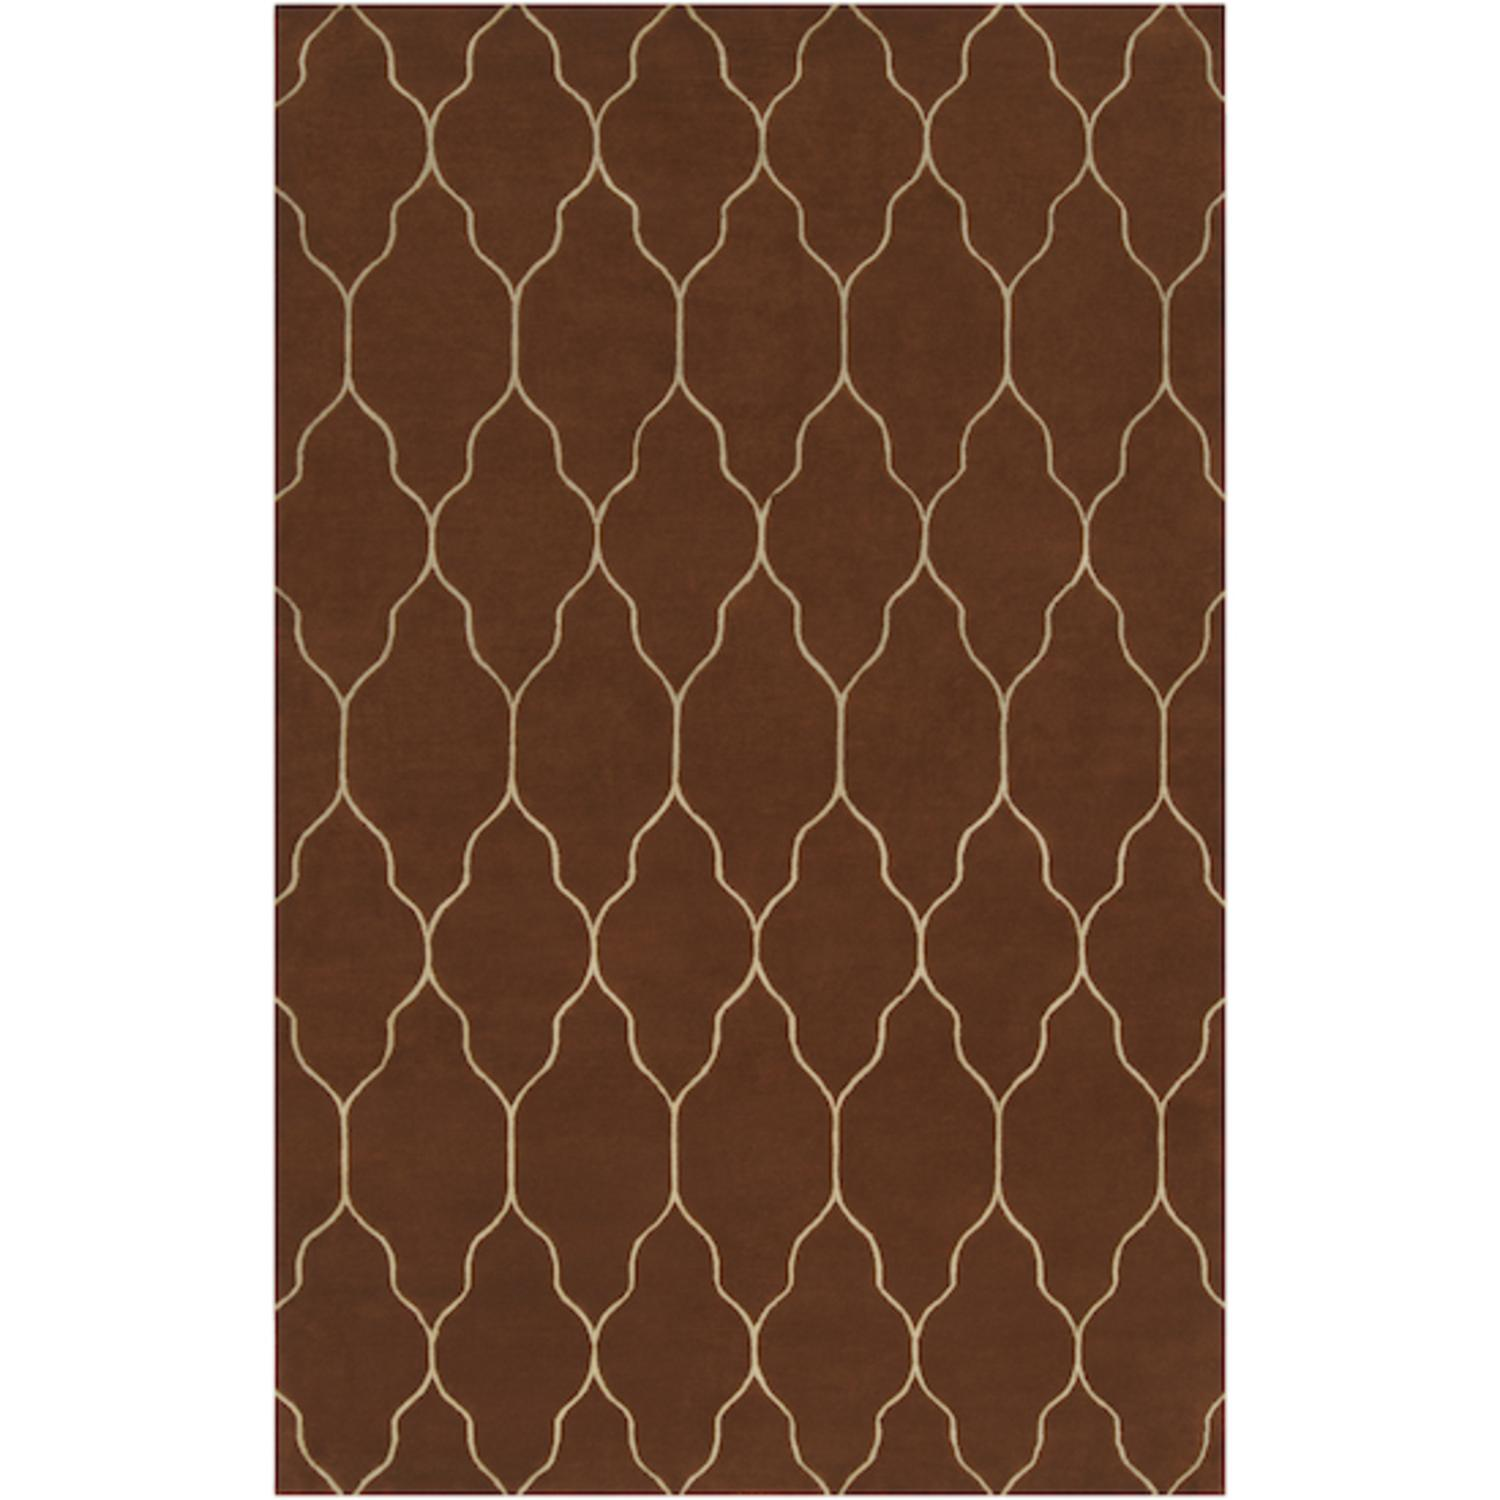 5' x 8' Mocha Trellis Sand Beige and Russett Brown Wool Area Throw Rug